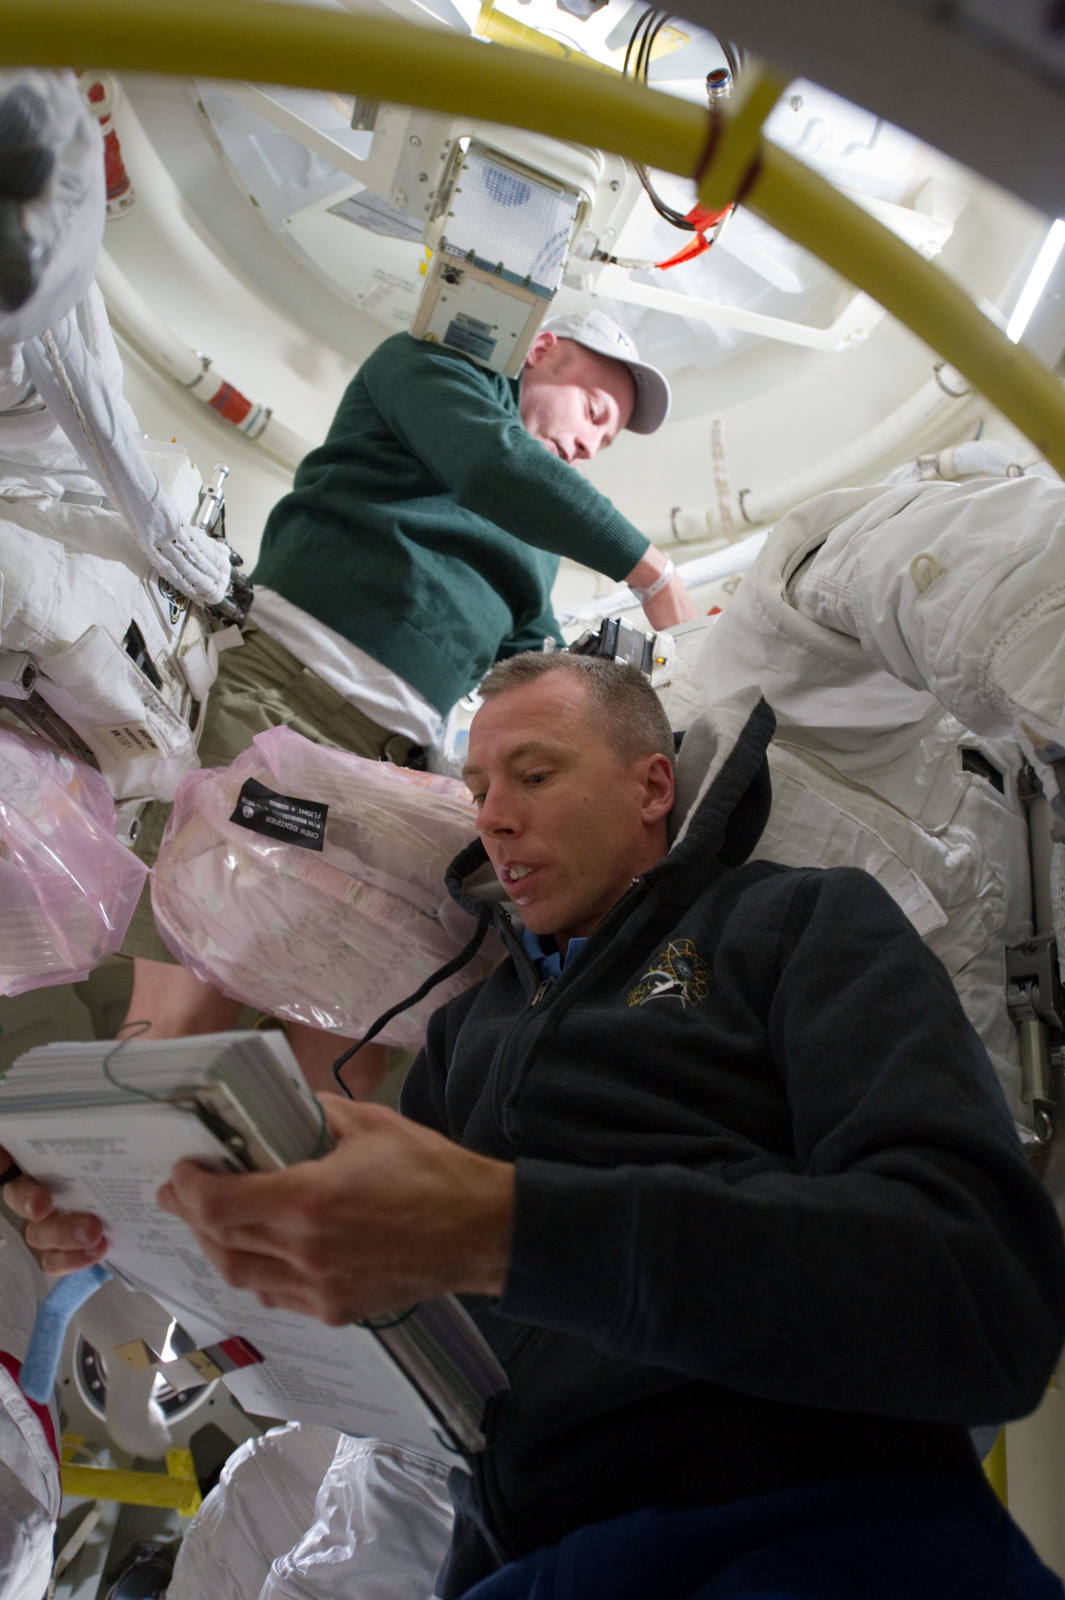 S134E006520 - STS-134 - View of STS-134 Crew Members working on the Middeck